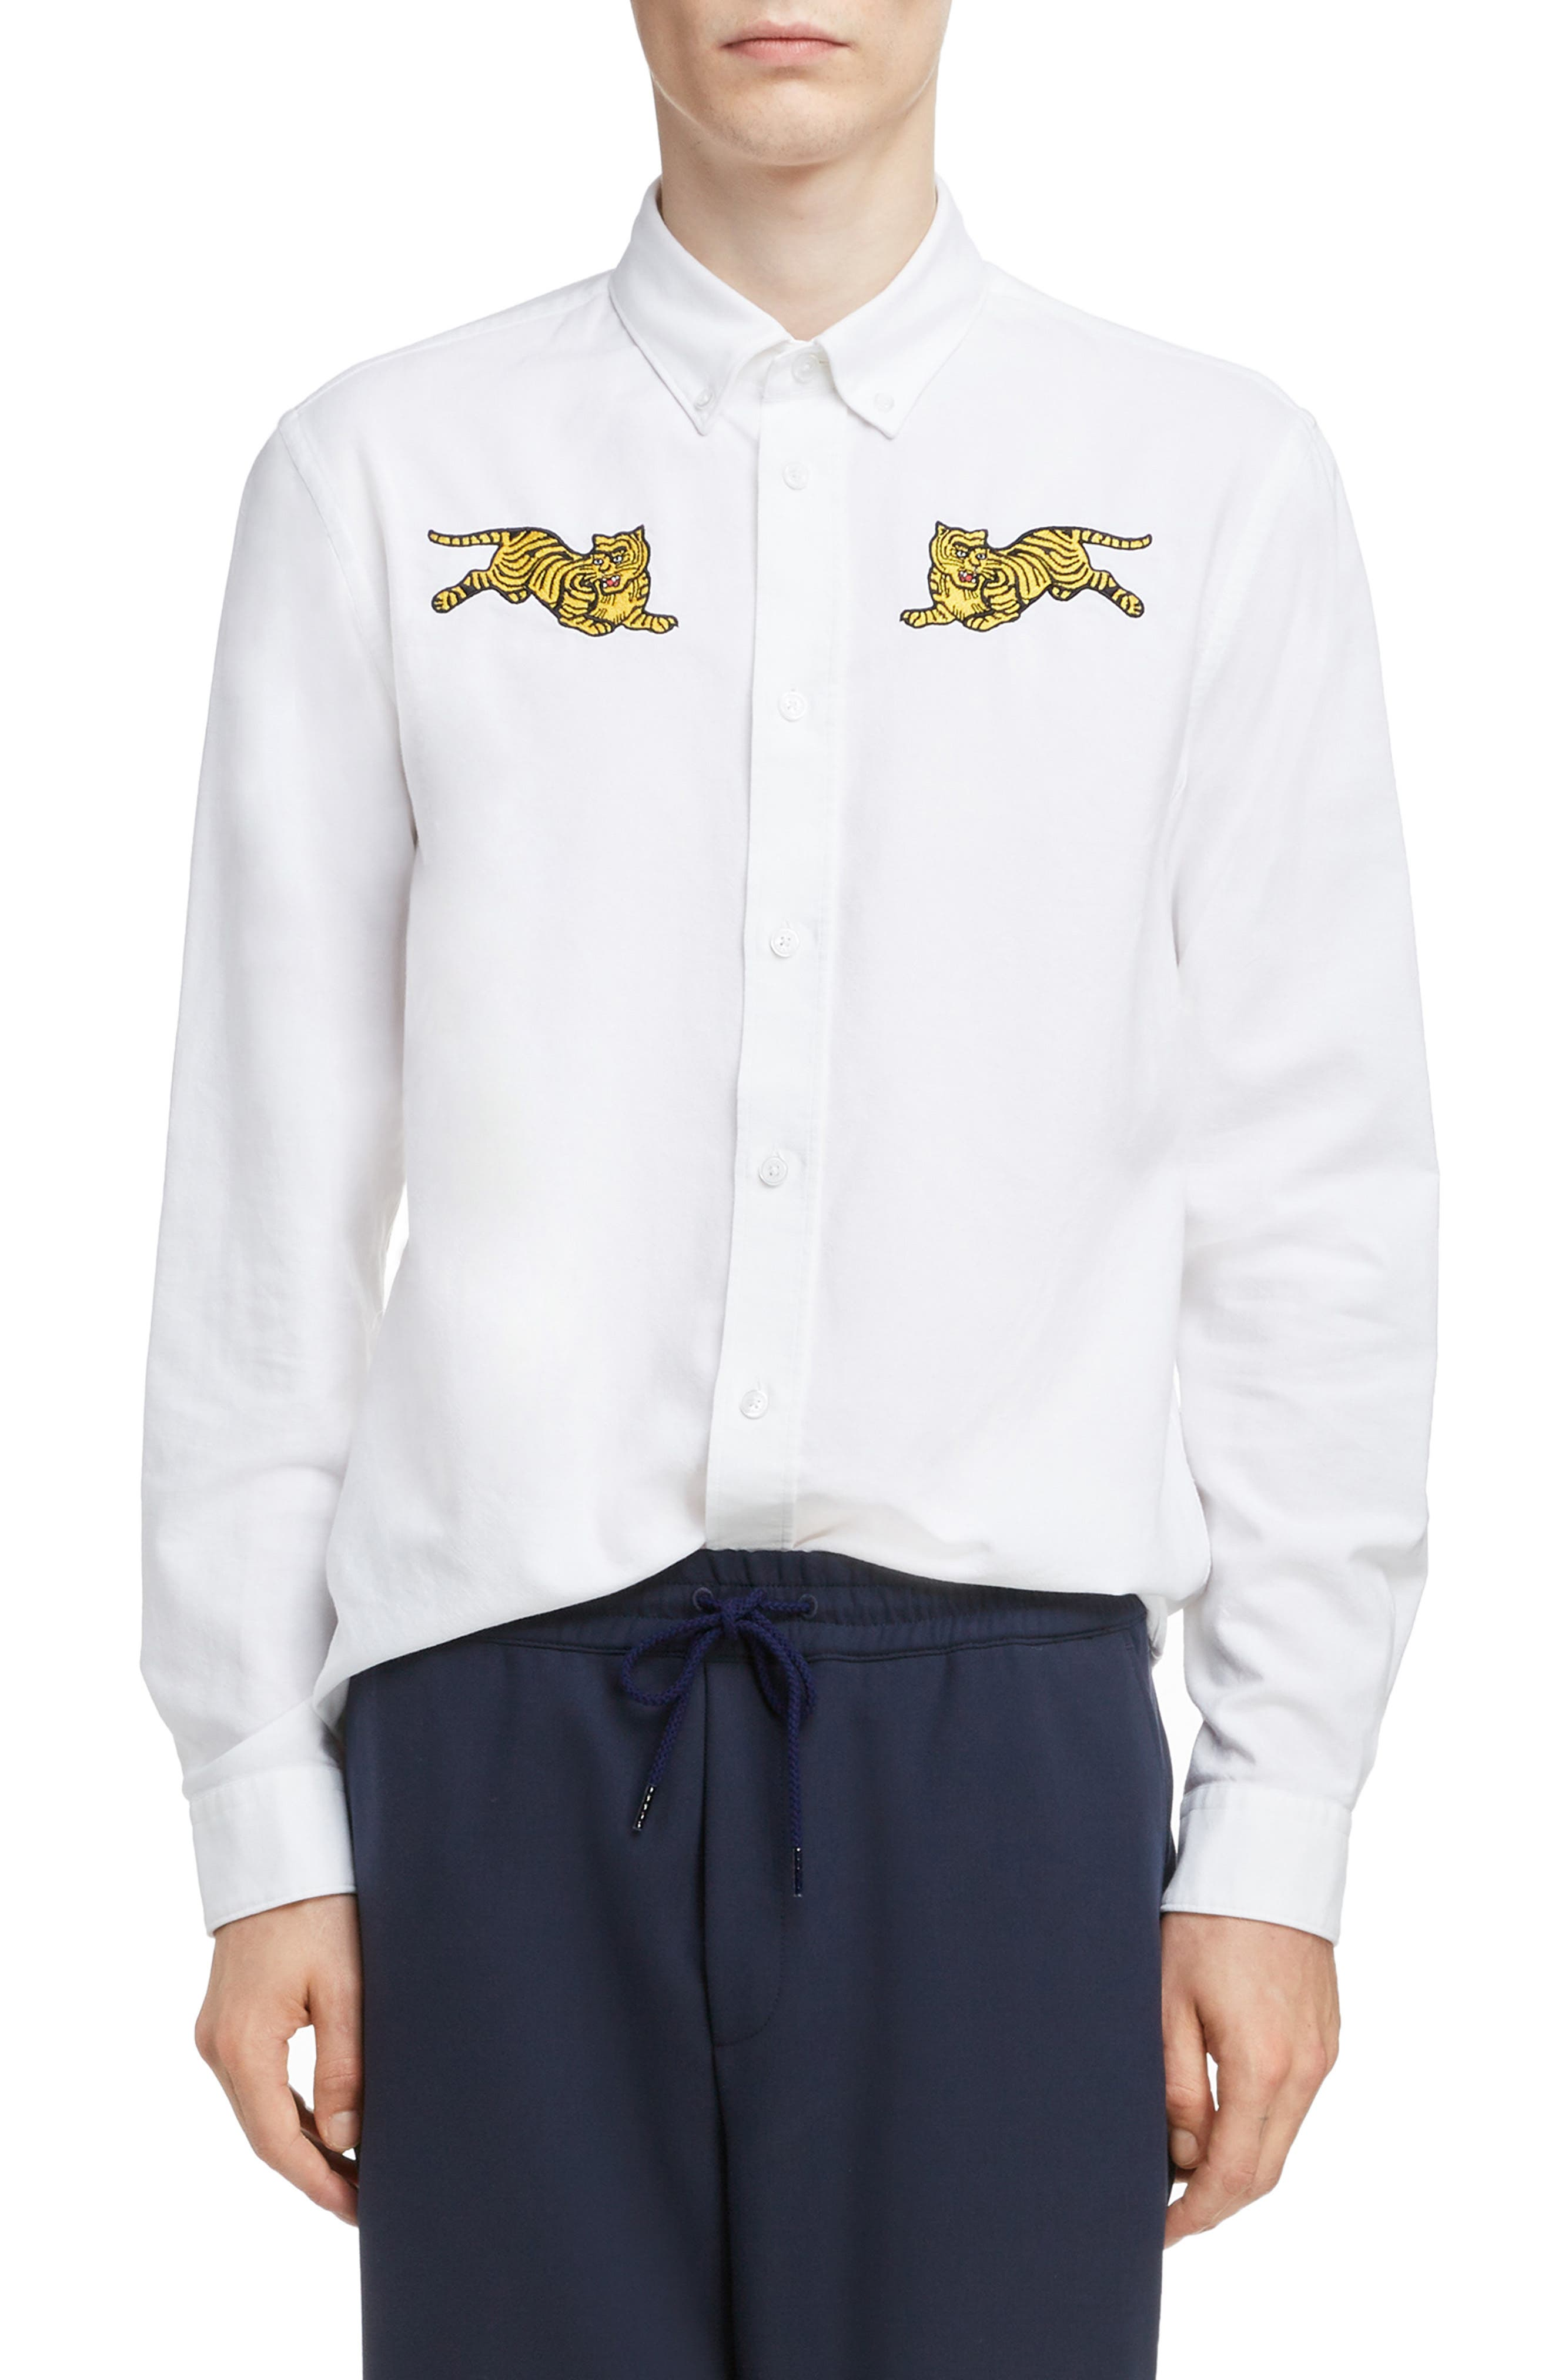 KENZO Jumping Tiger Crest Woven Shirt, Main, color, WHITE